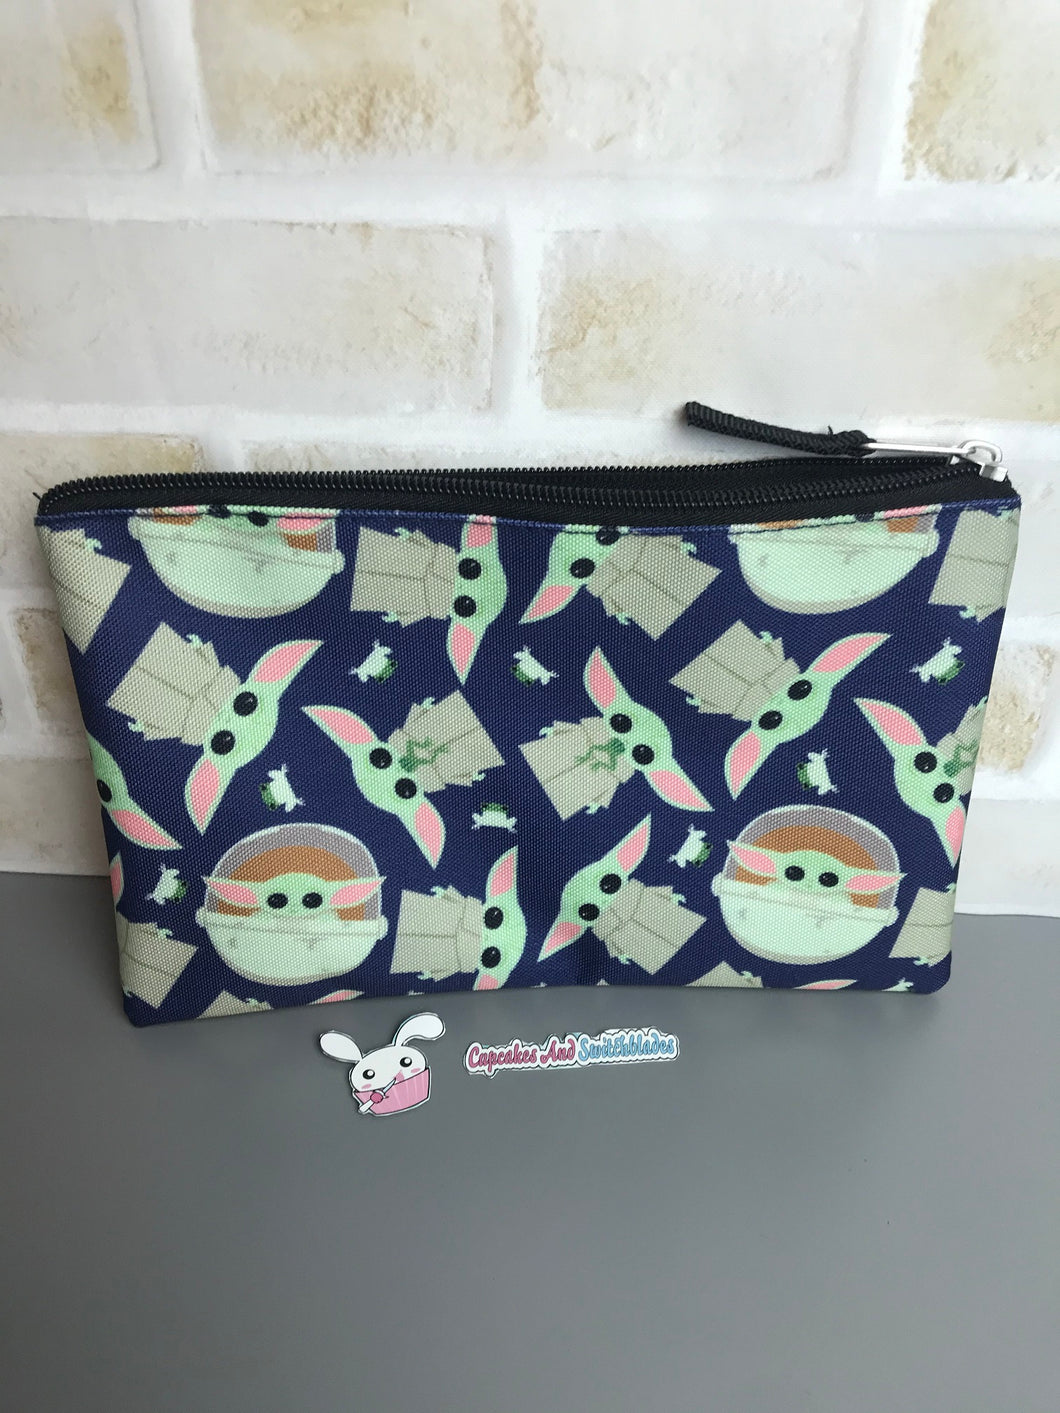 Baby Yoda Pouch - The Child The Mandalorian